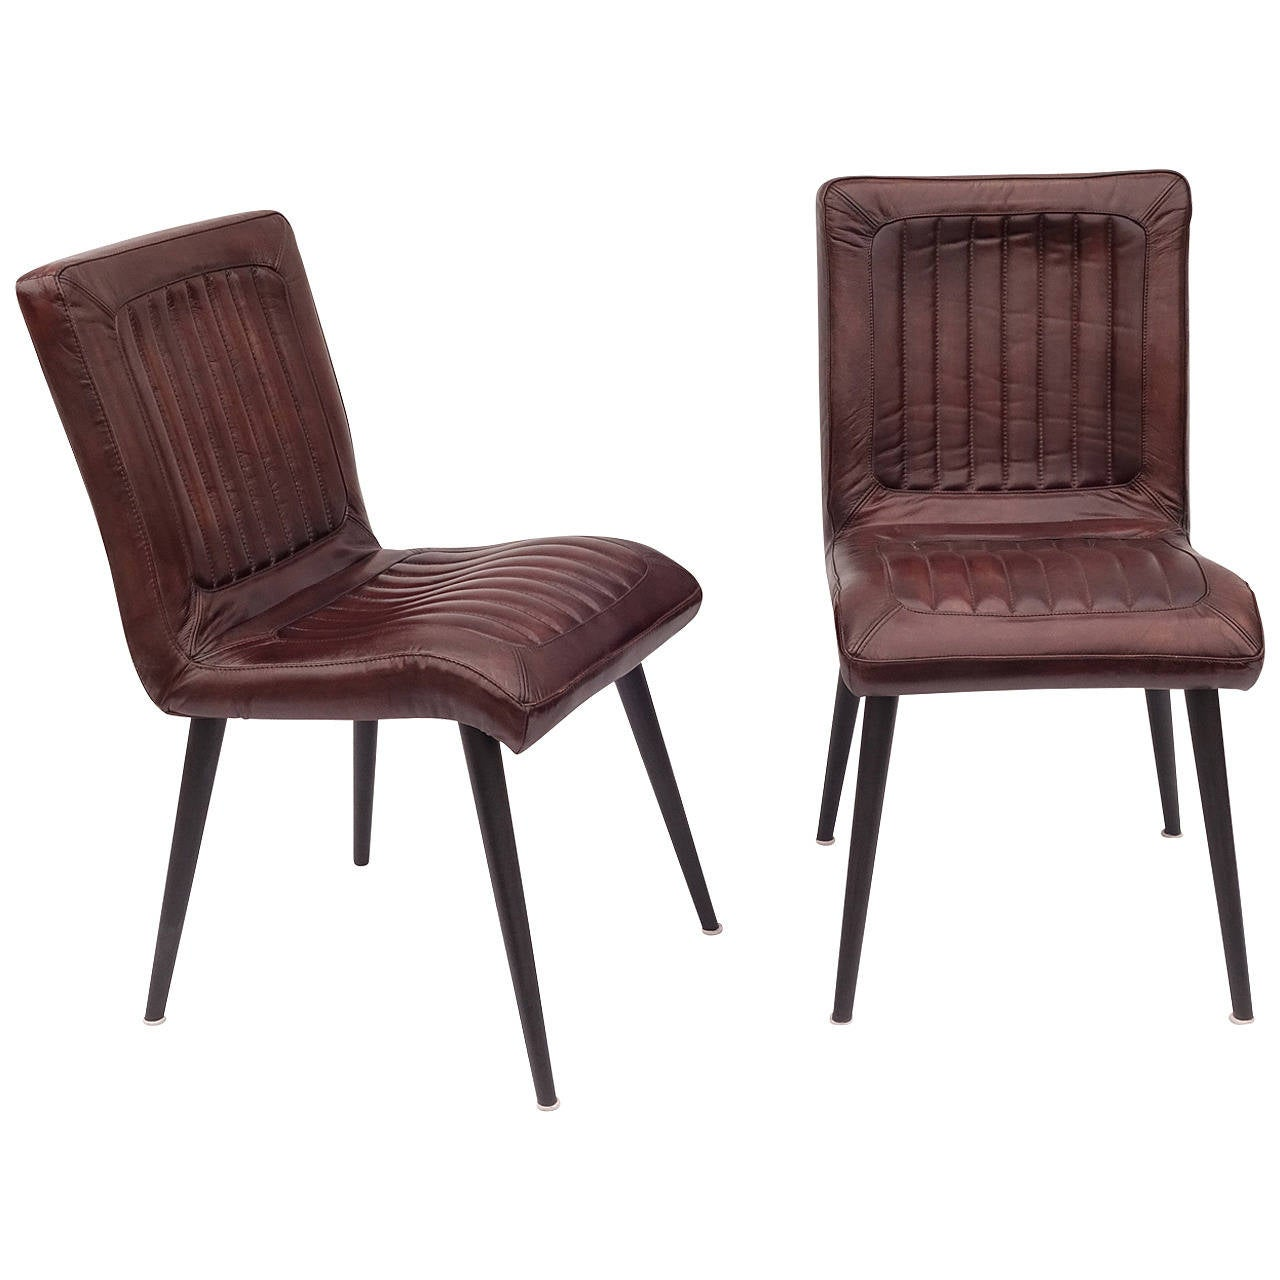 Chairs For Sale Leather Upholstered Dining Chairs For Sale At 1stdibs